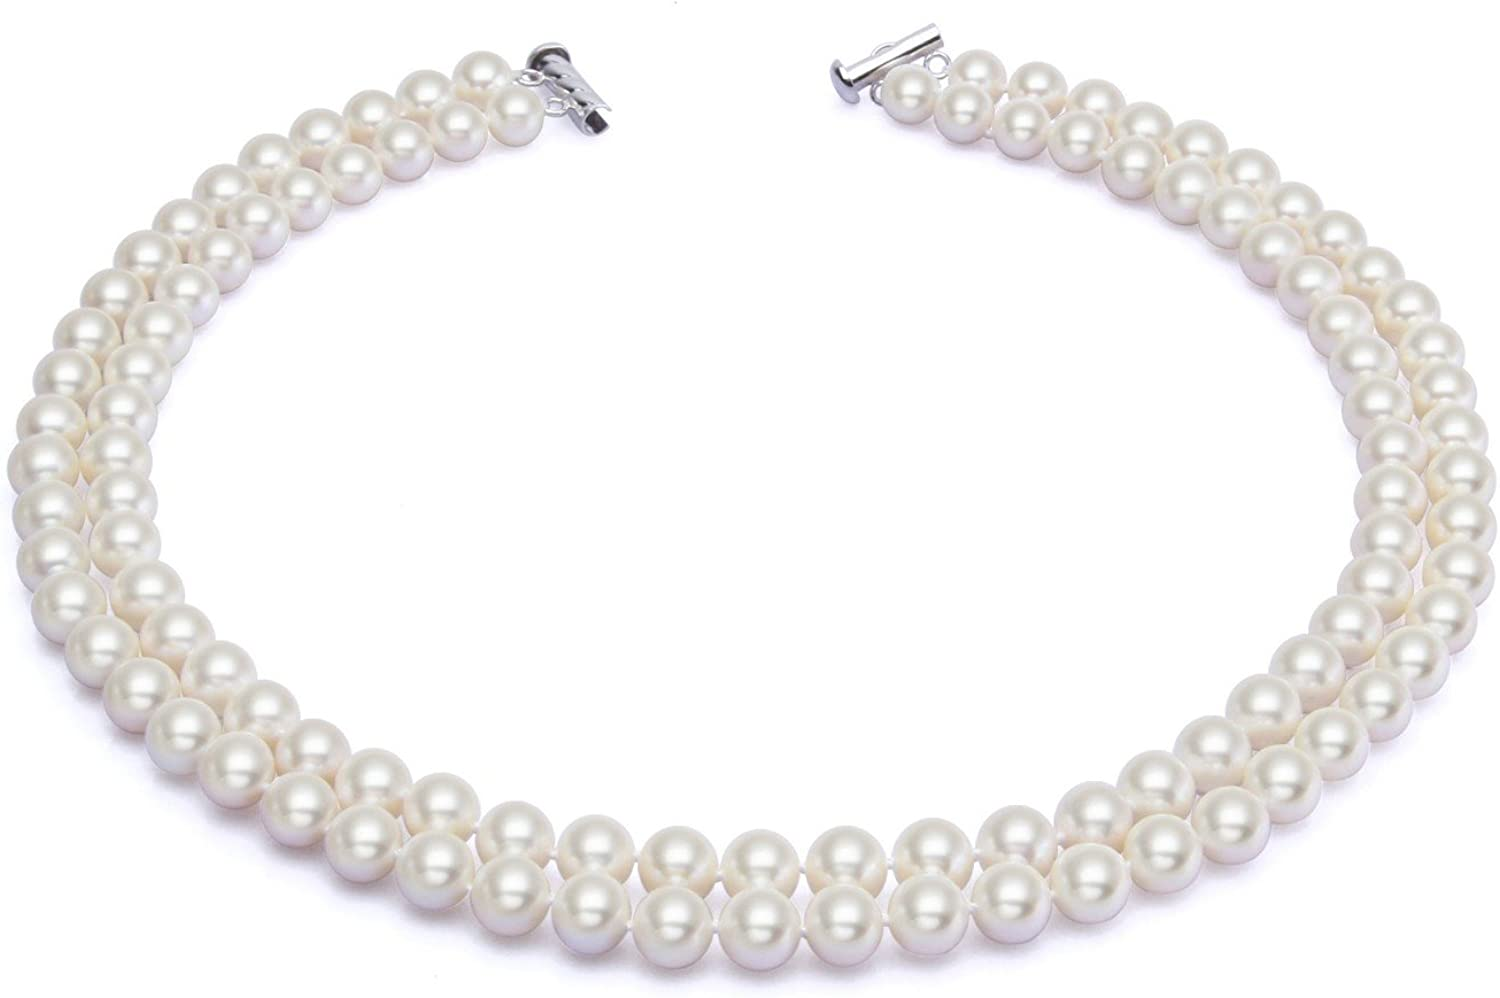 8mm White Akoya Cultured Shell Pearl Necklace Earrings Set 18/'/' AAA